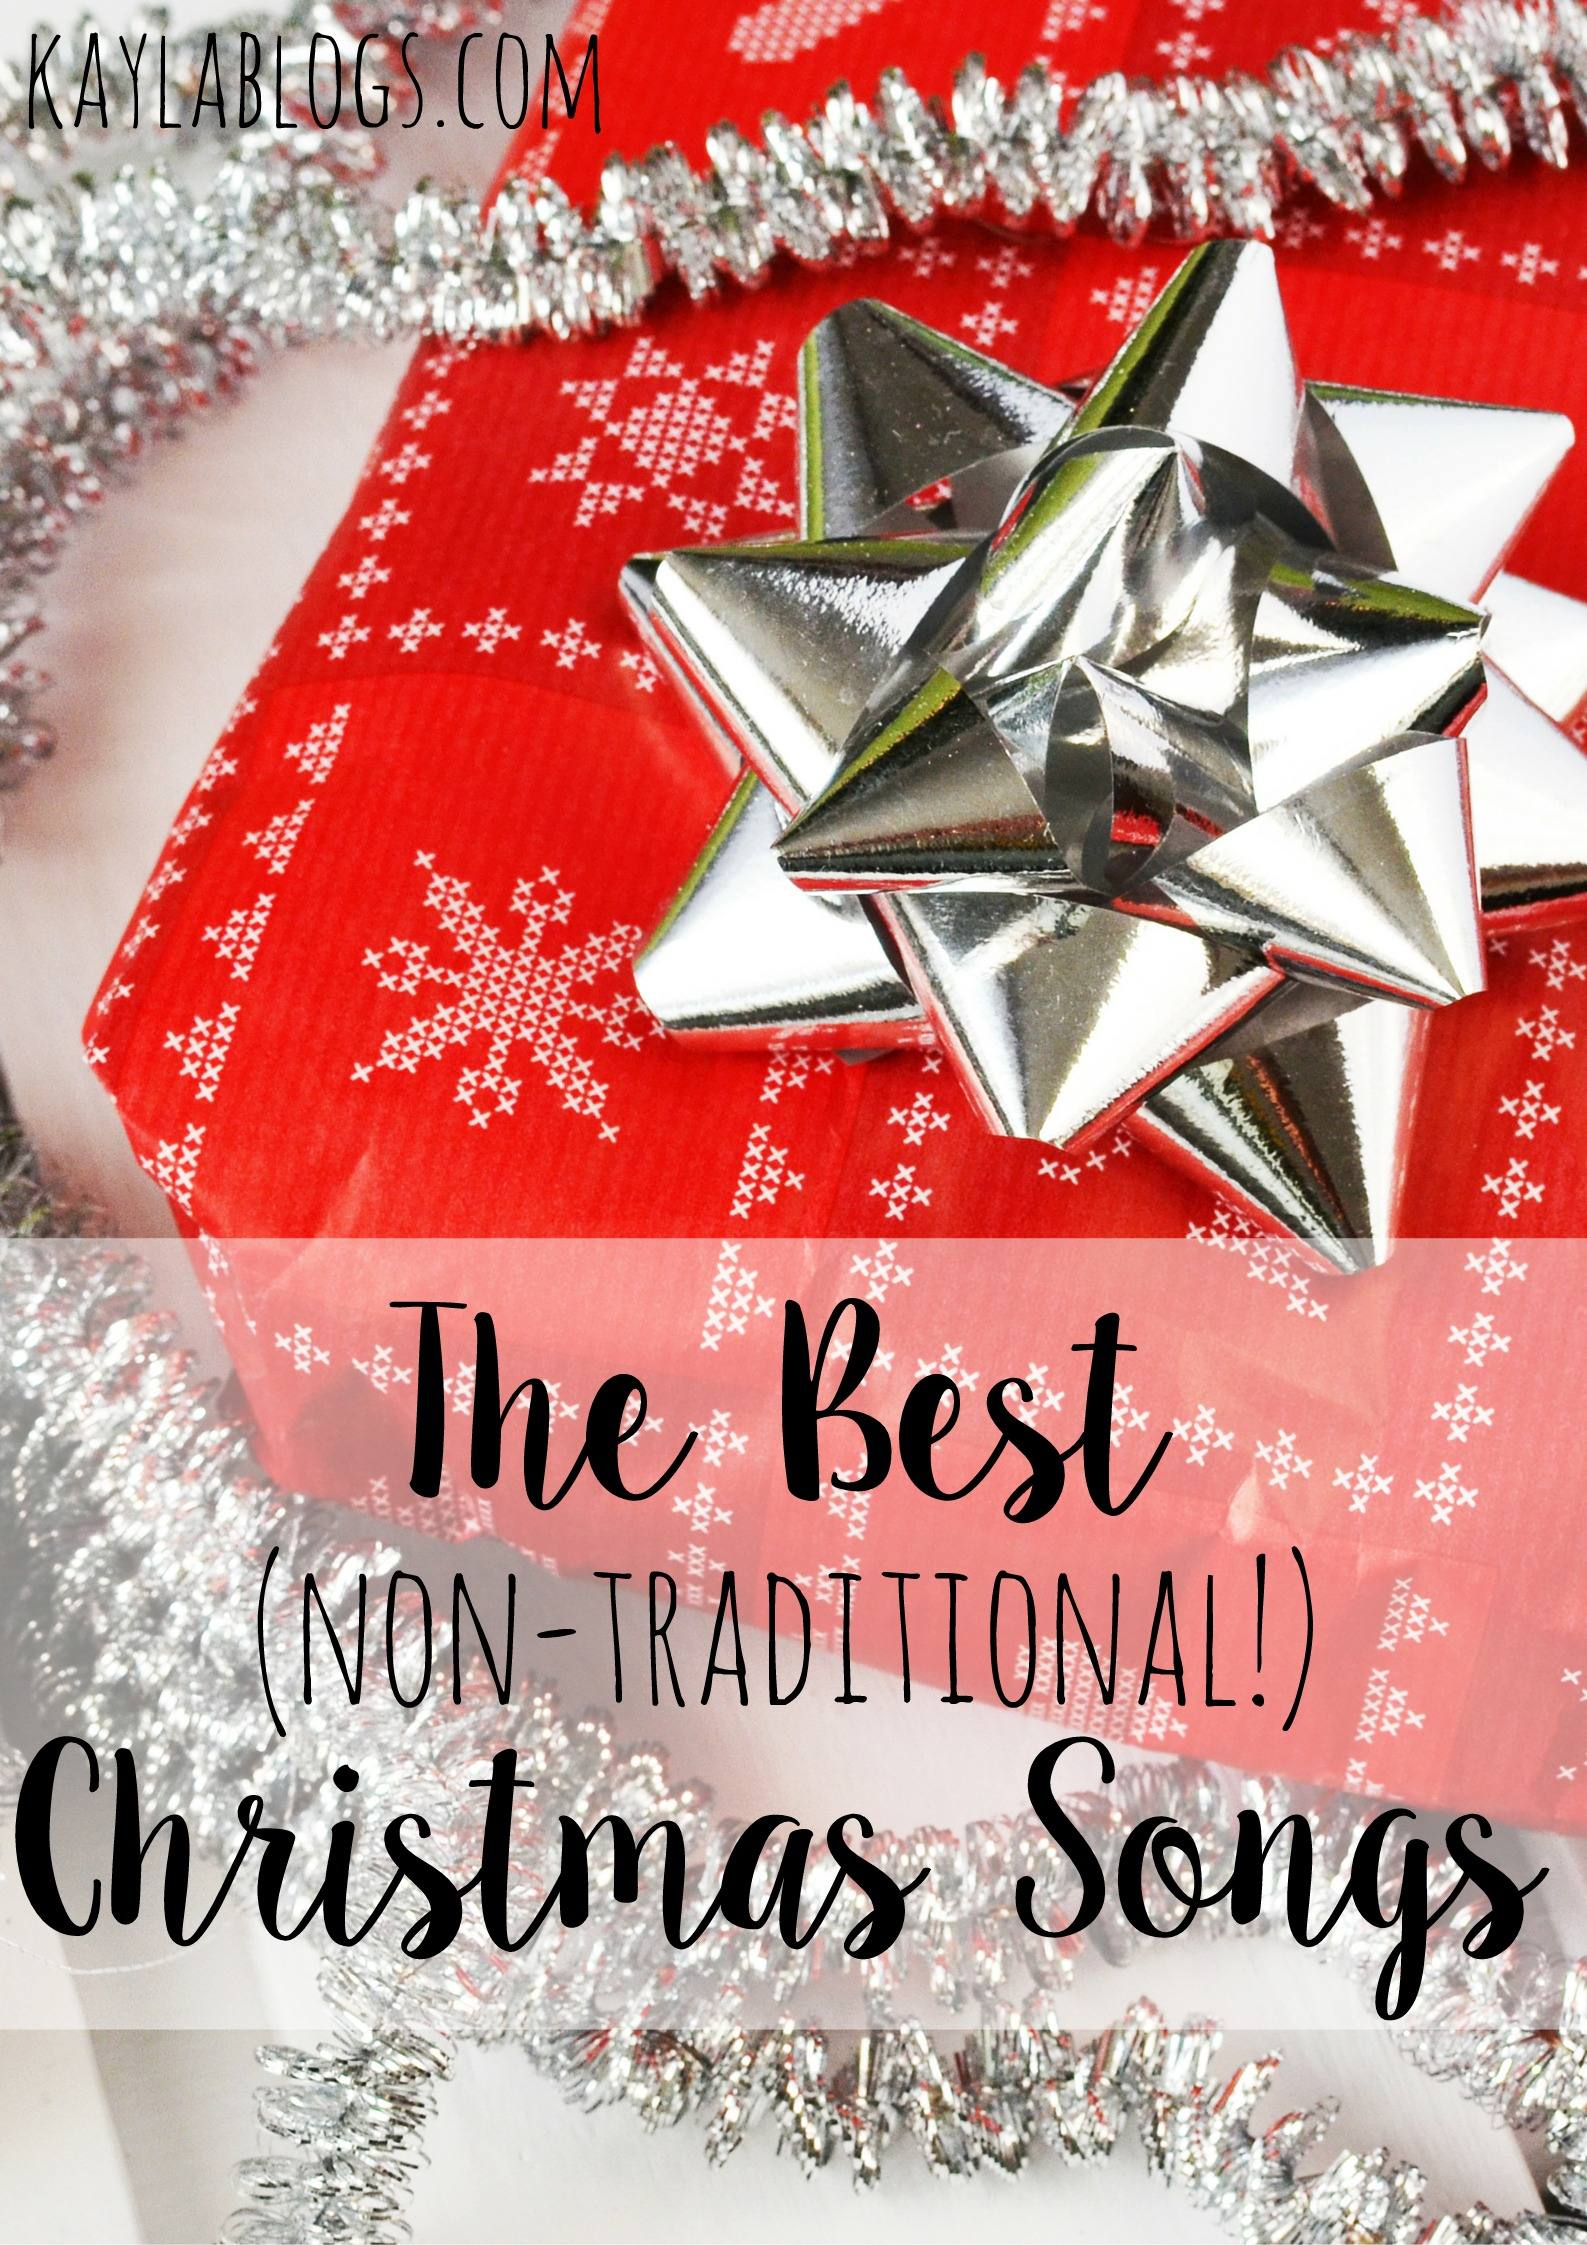 reviews the best nontraditional christmas songs kayla blogs - Best Christmas Songs List